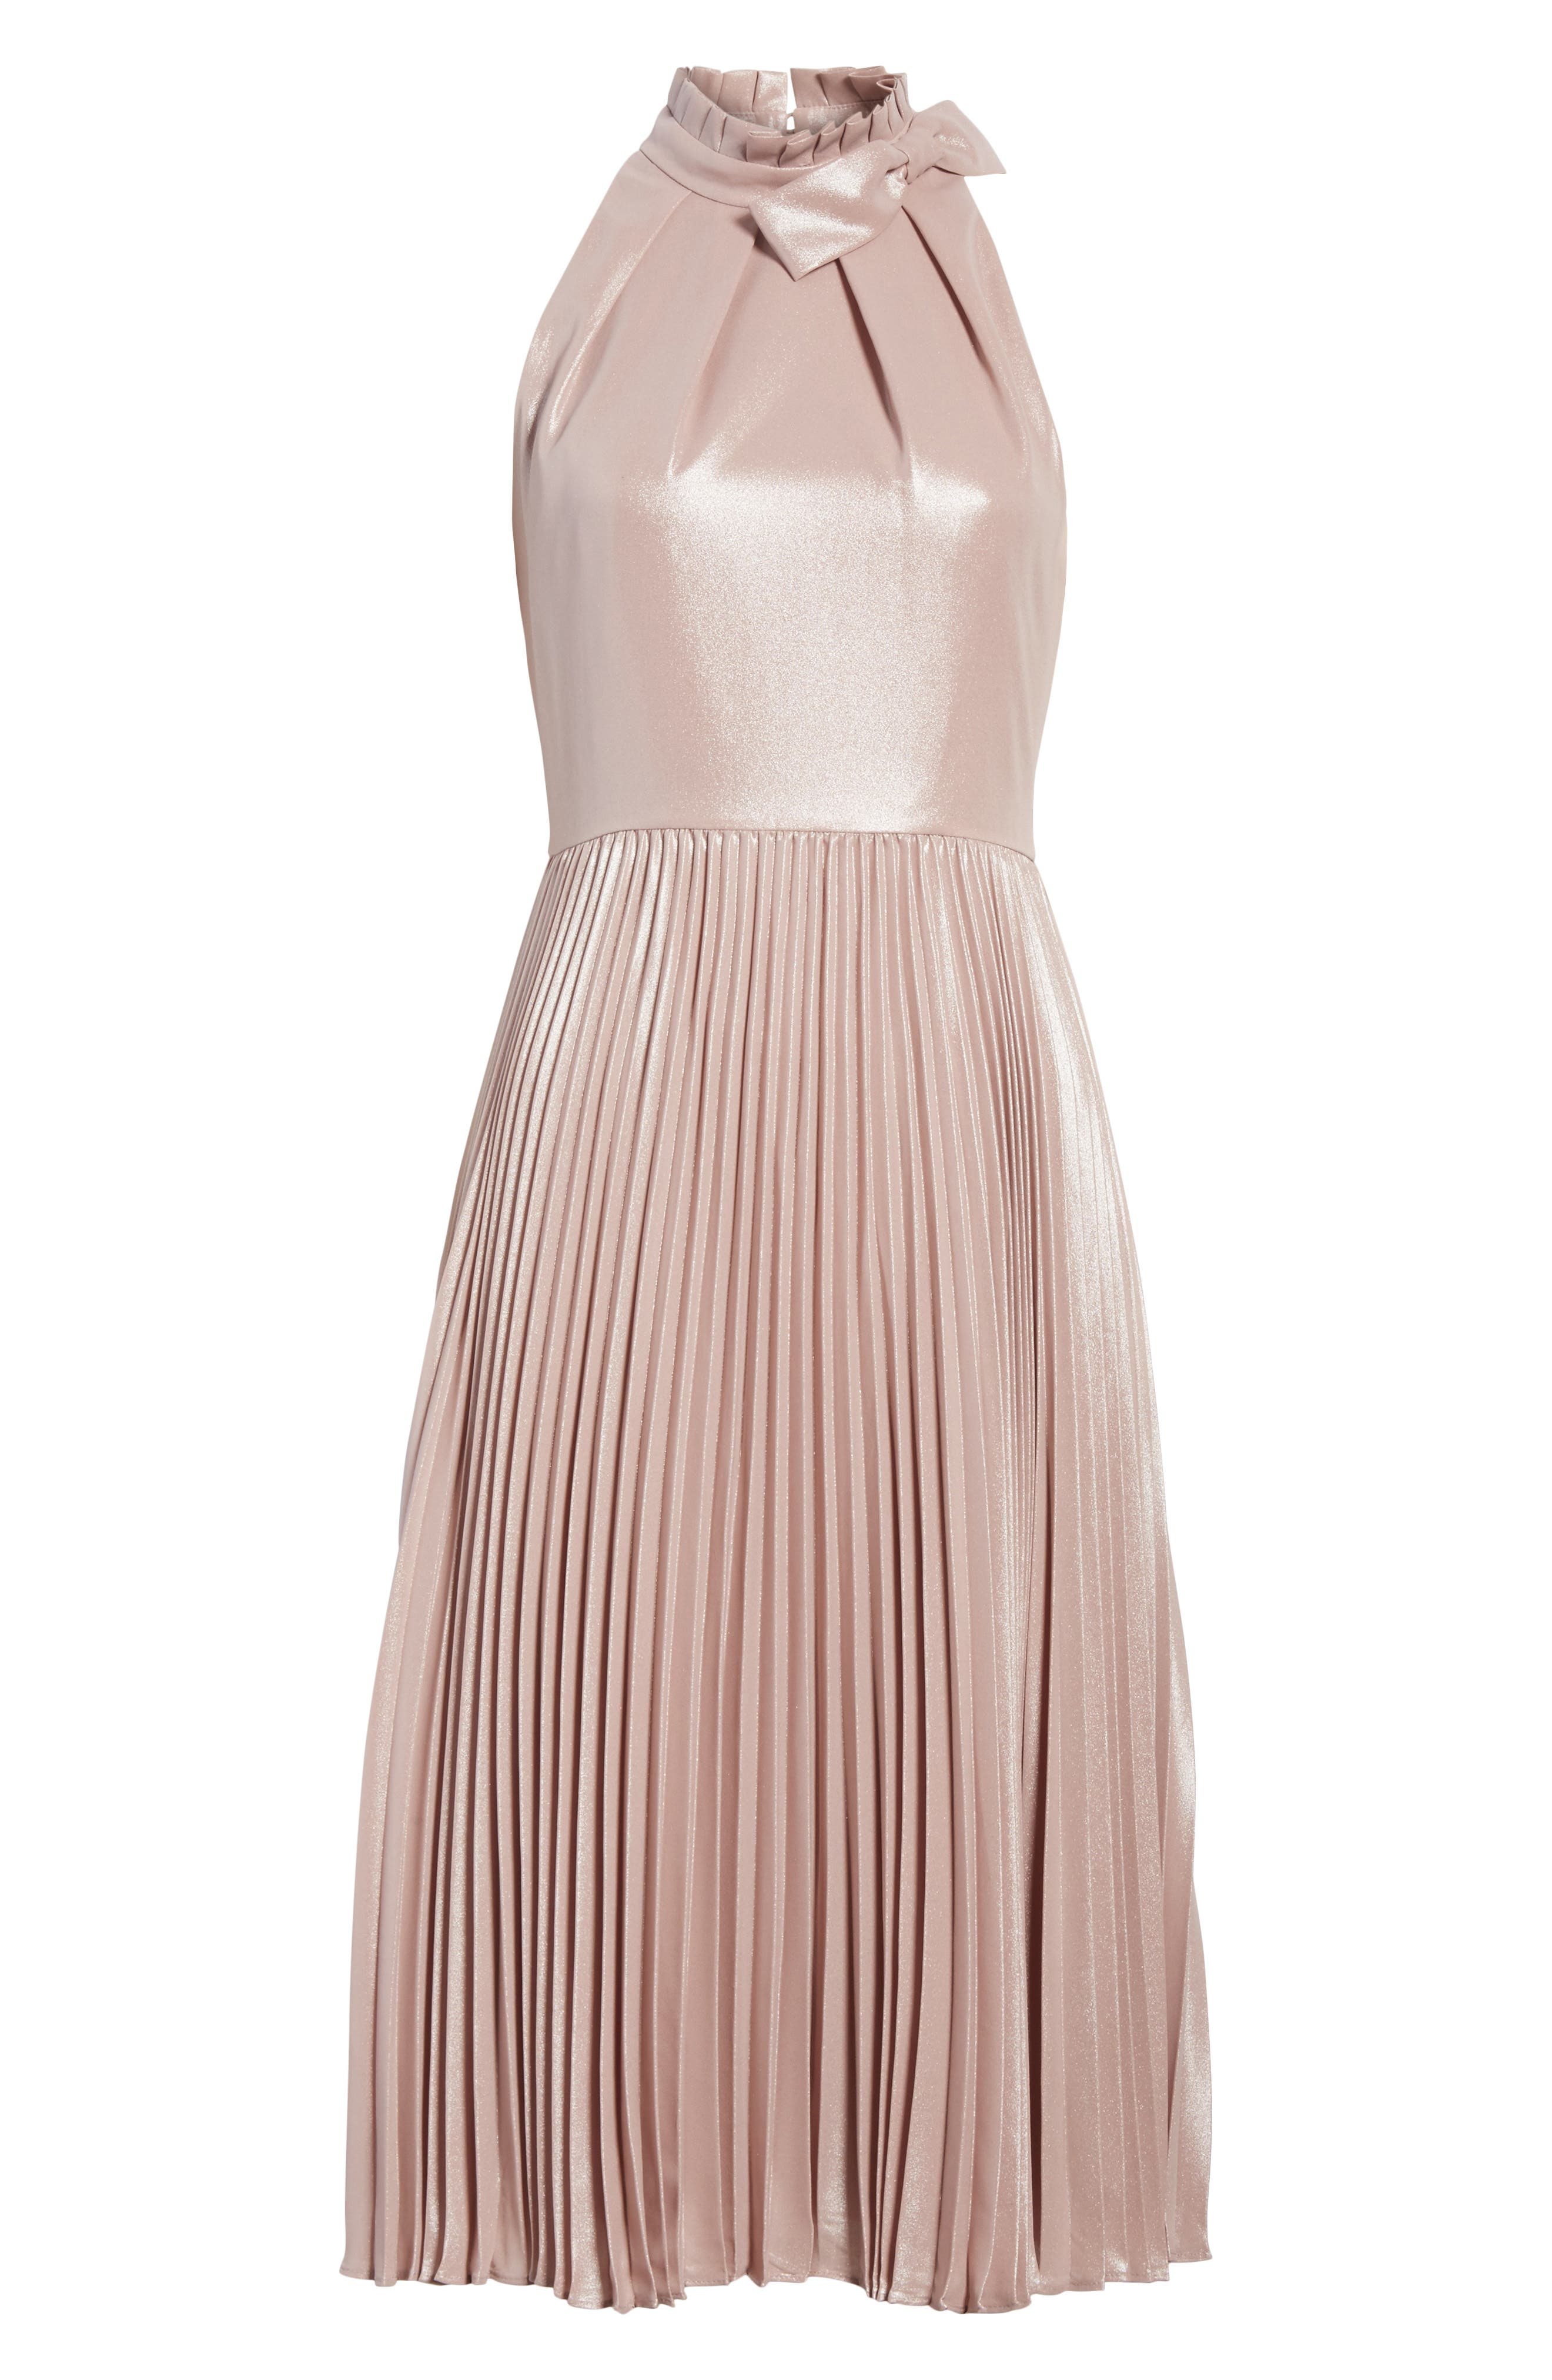 Bow Neck Fit & Flare Dress,                             Alternate thumbnail 6, color,                             Rose Gold